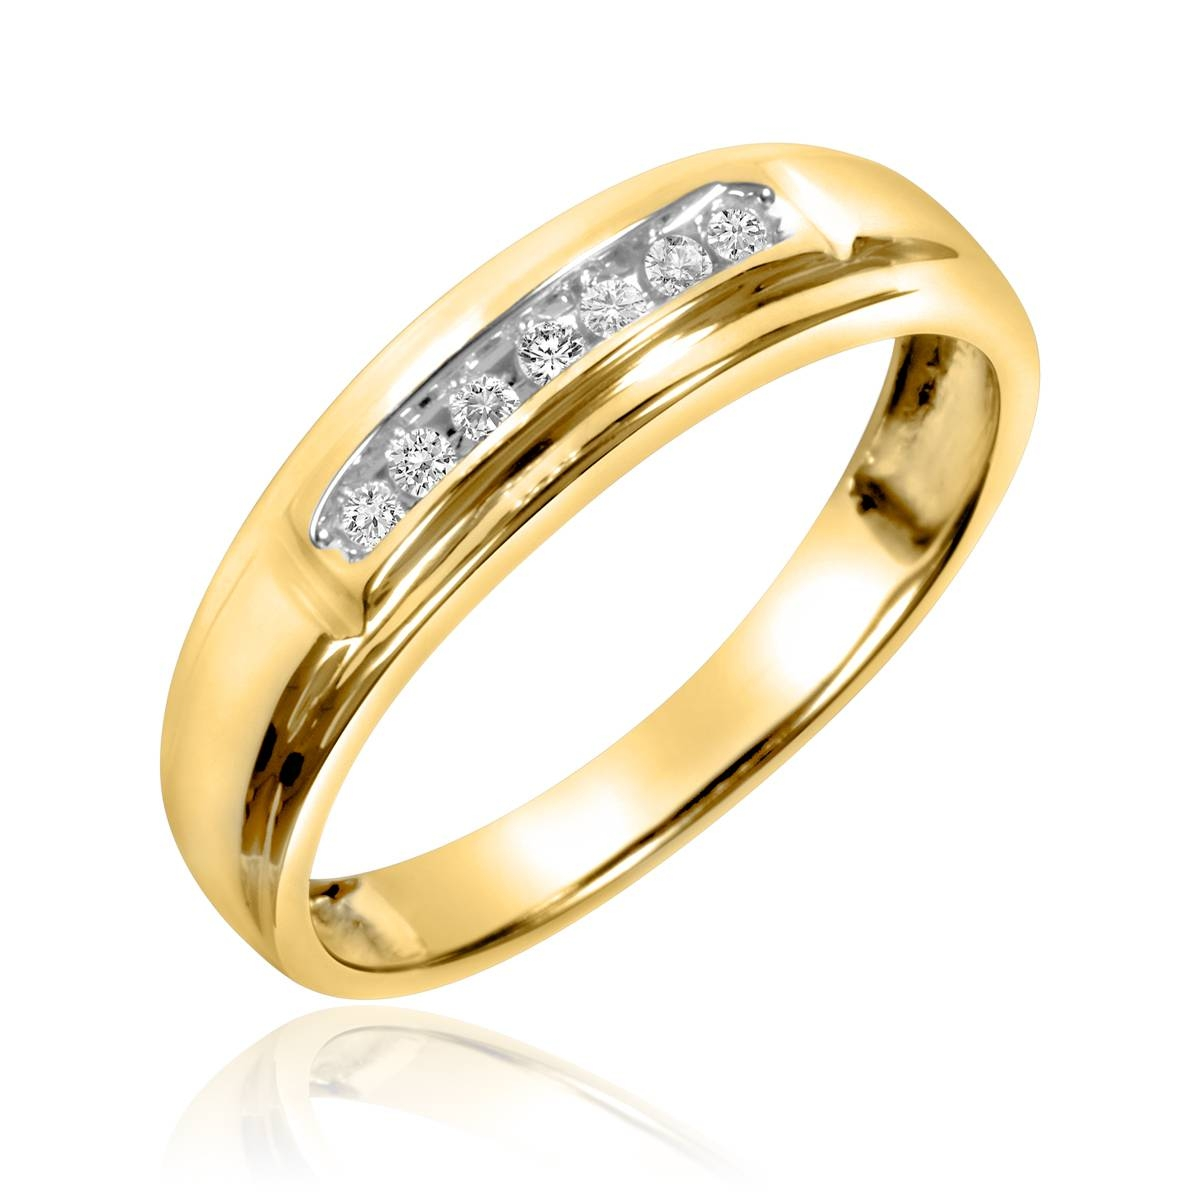 Engraved Gold Wedding Bands Image Is Loading With